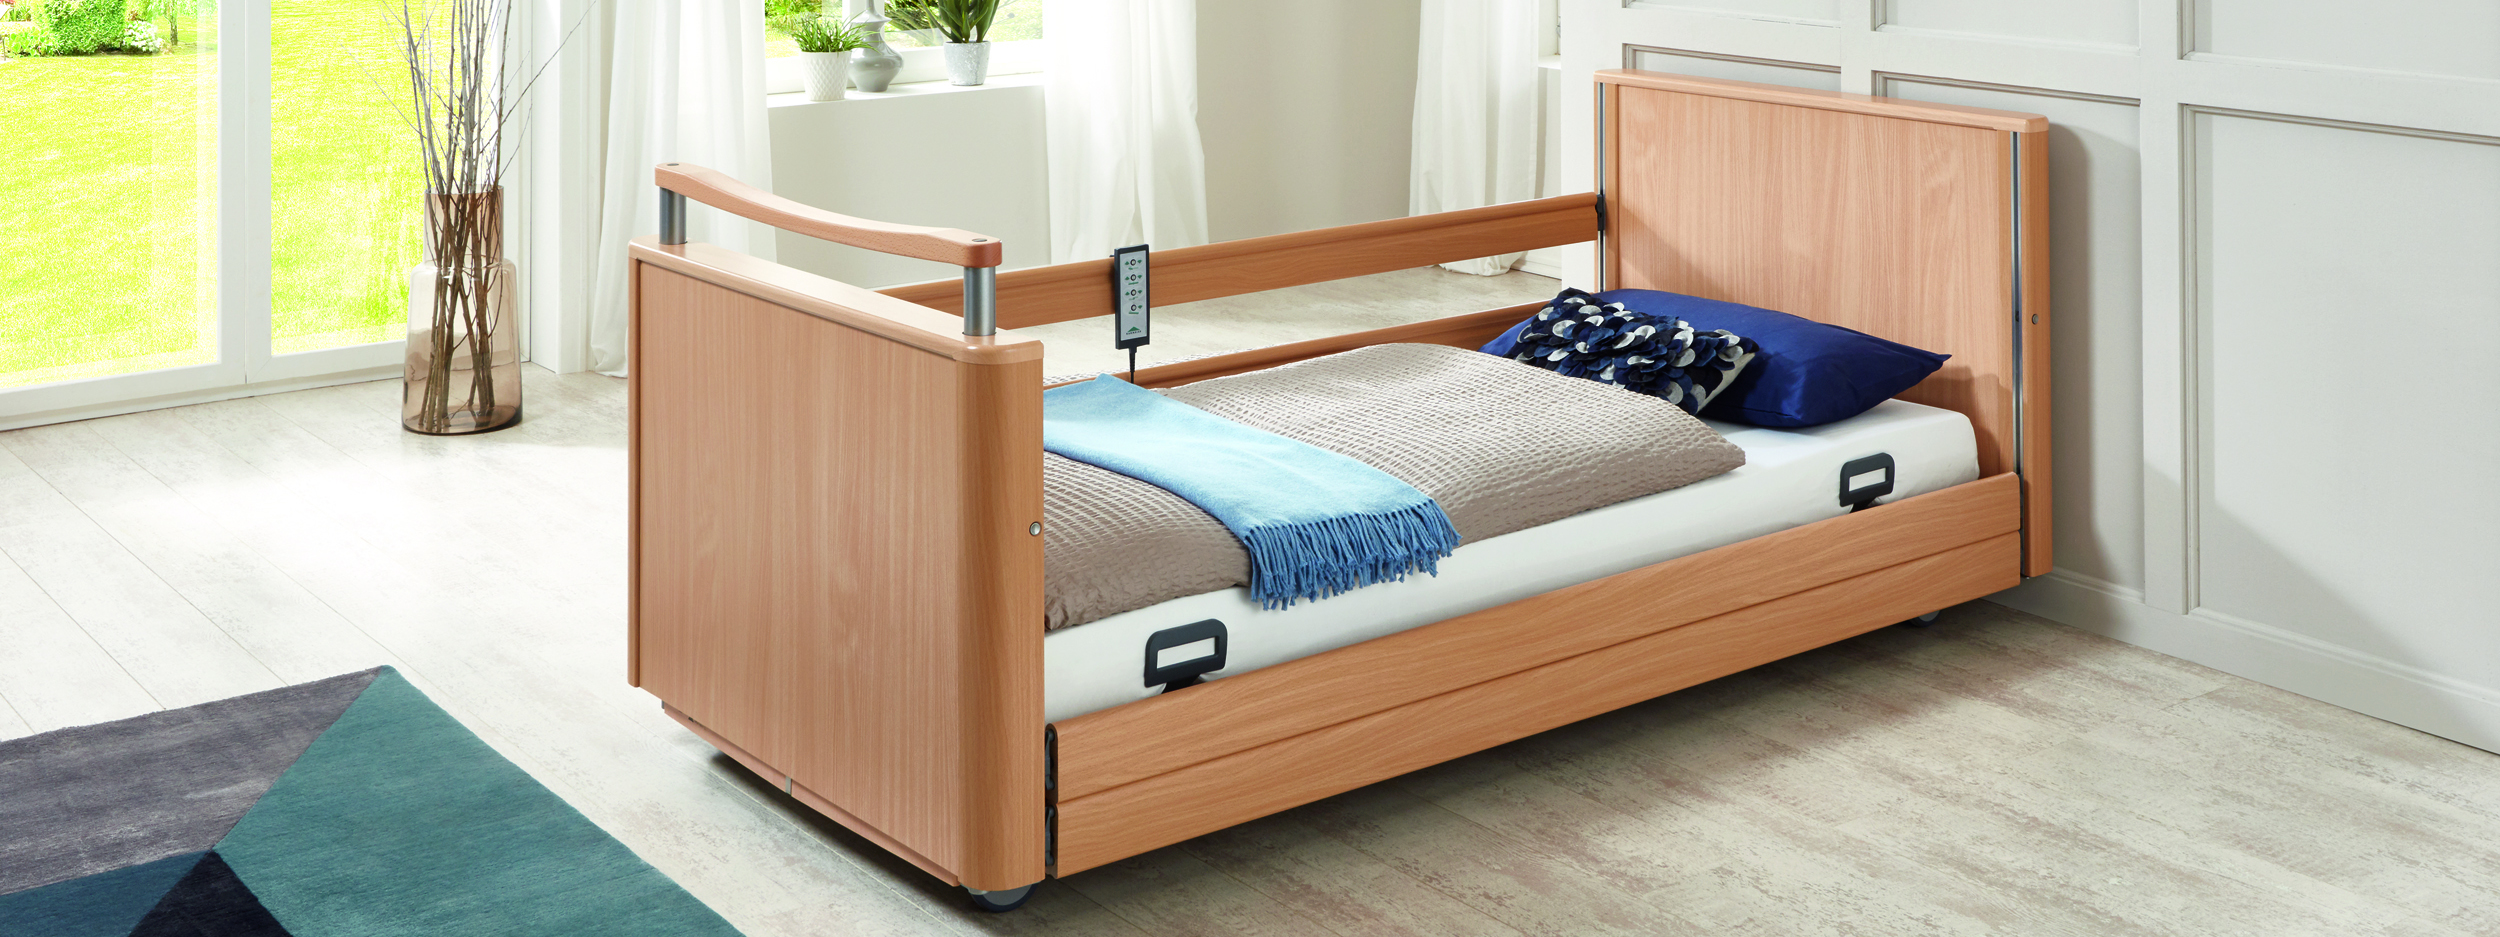 Full-length safety side (DSG) of the Inovia care bed